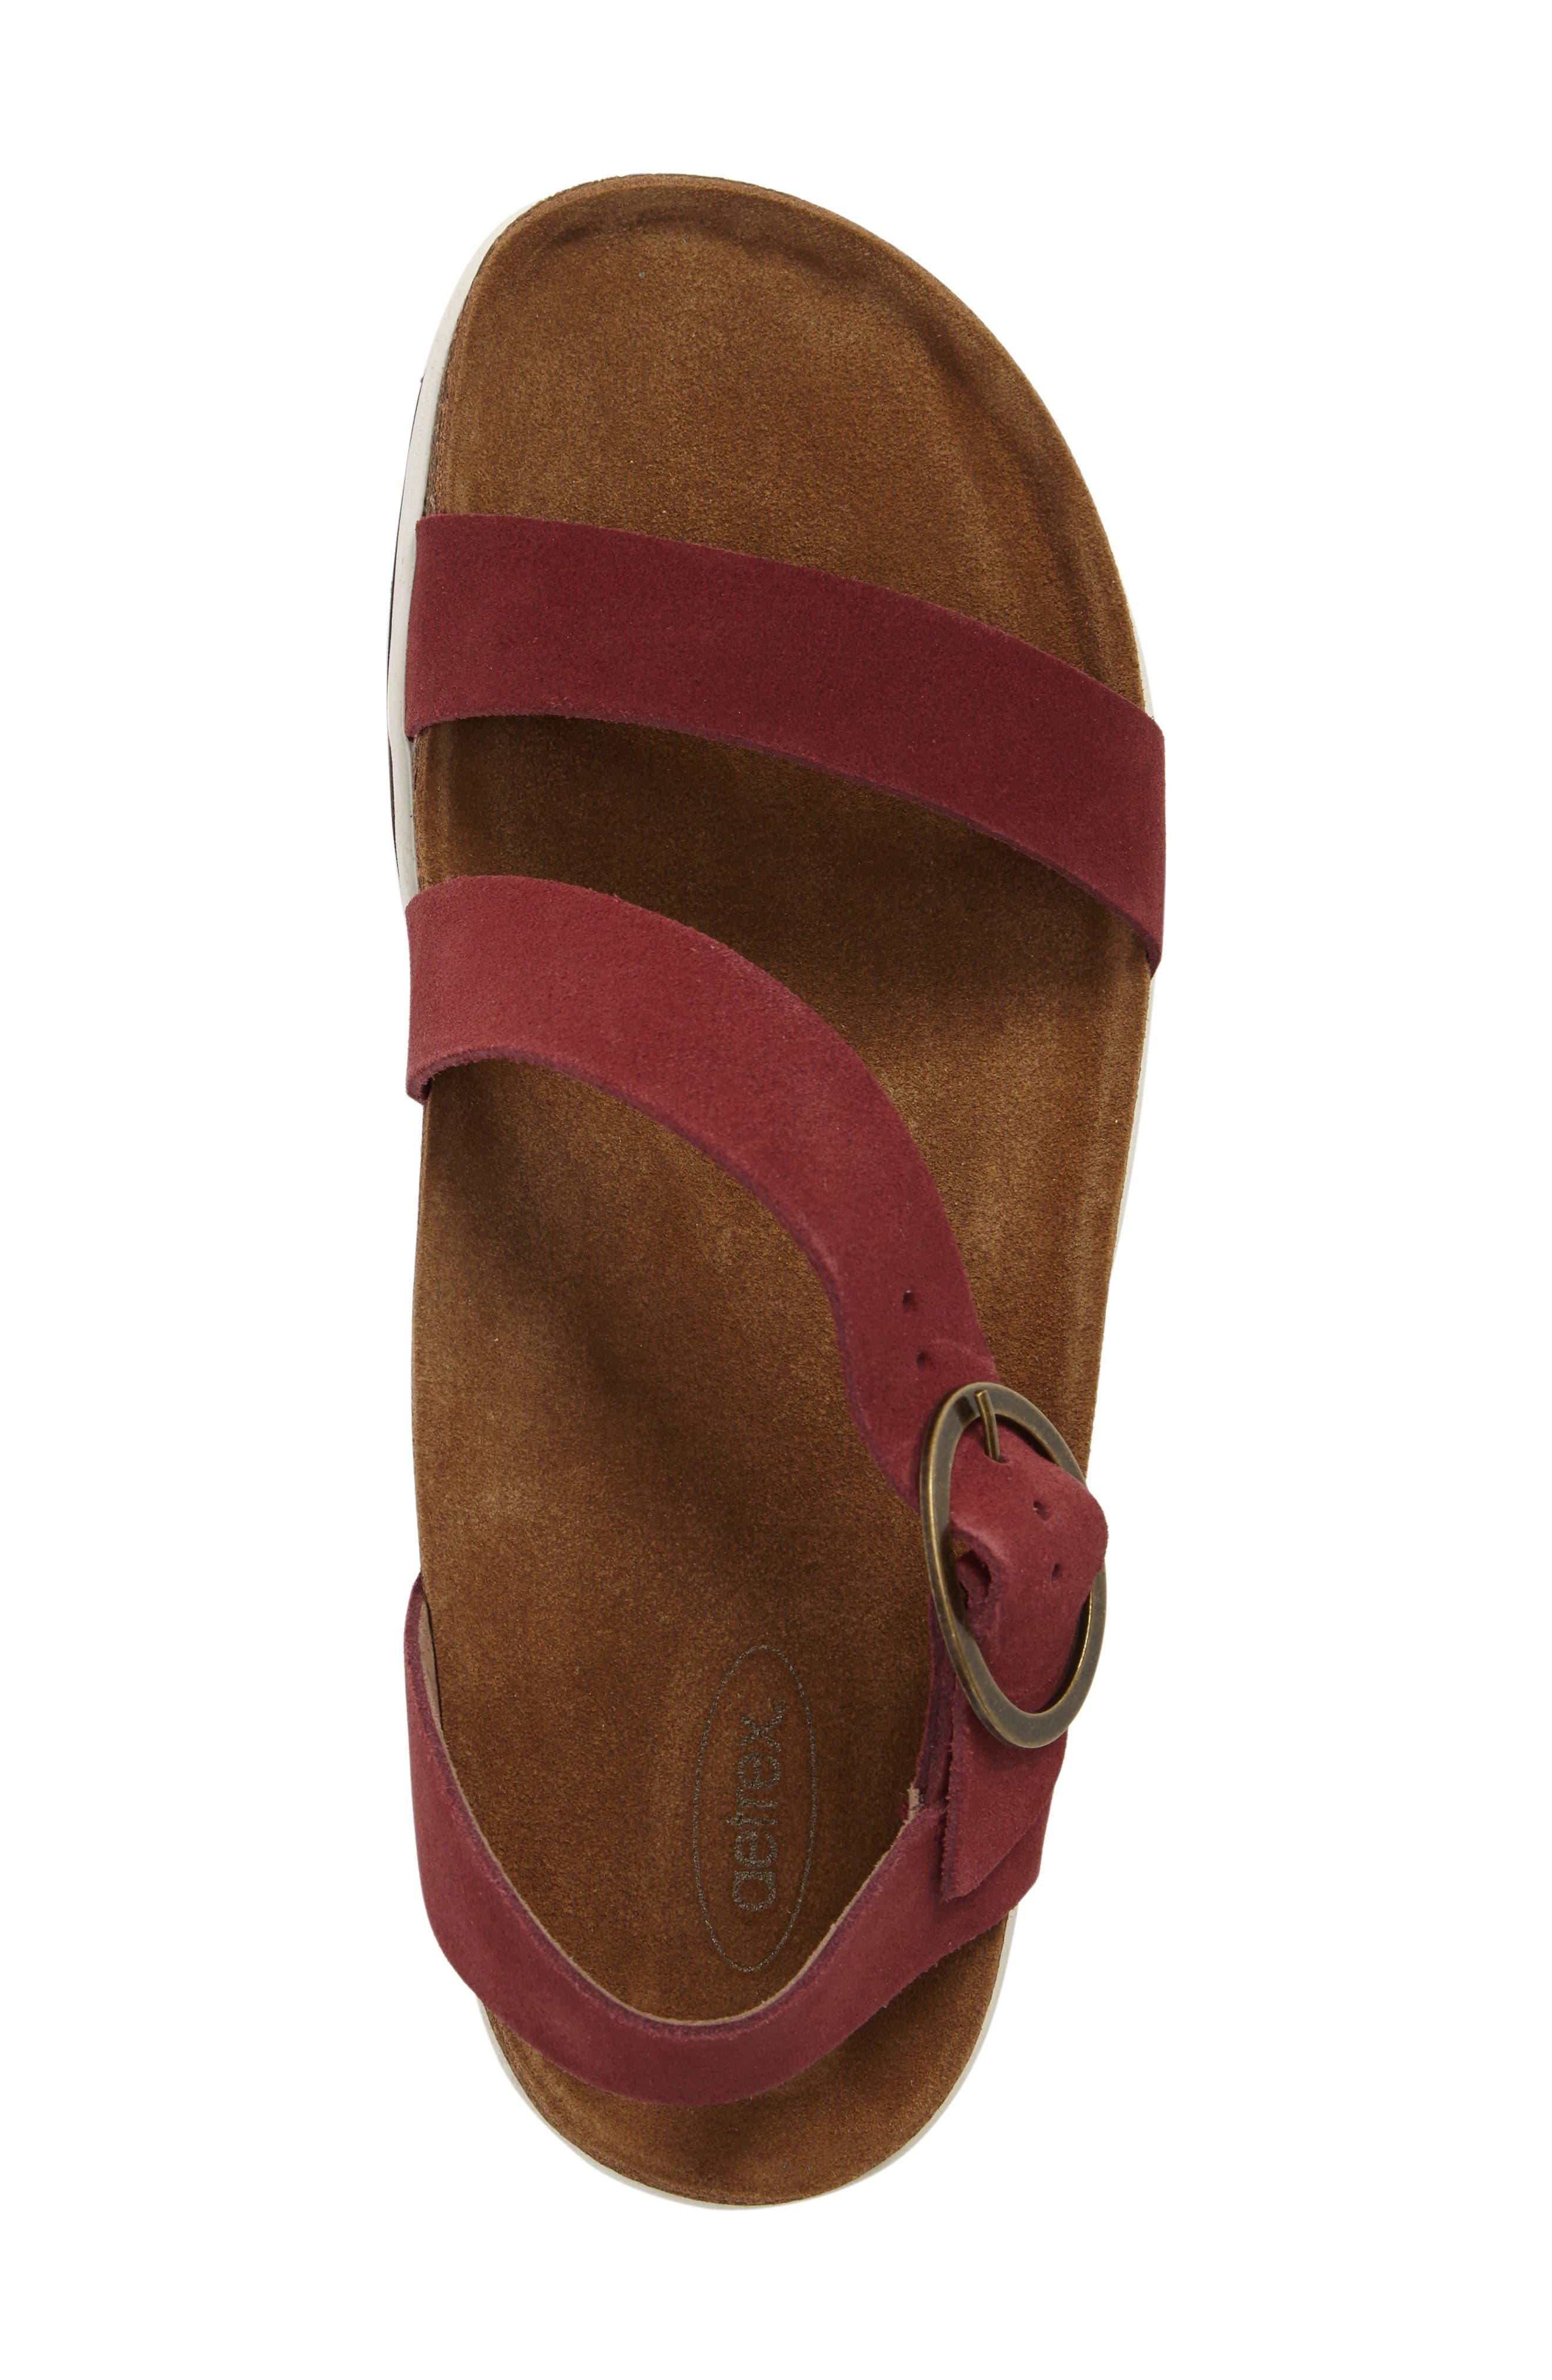 Adrianna Sandal,                             Alternate thumbnail 5, color,                             Maroon Suede